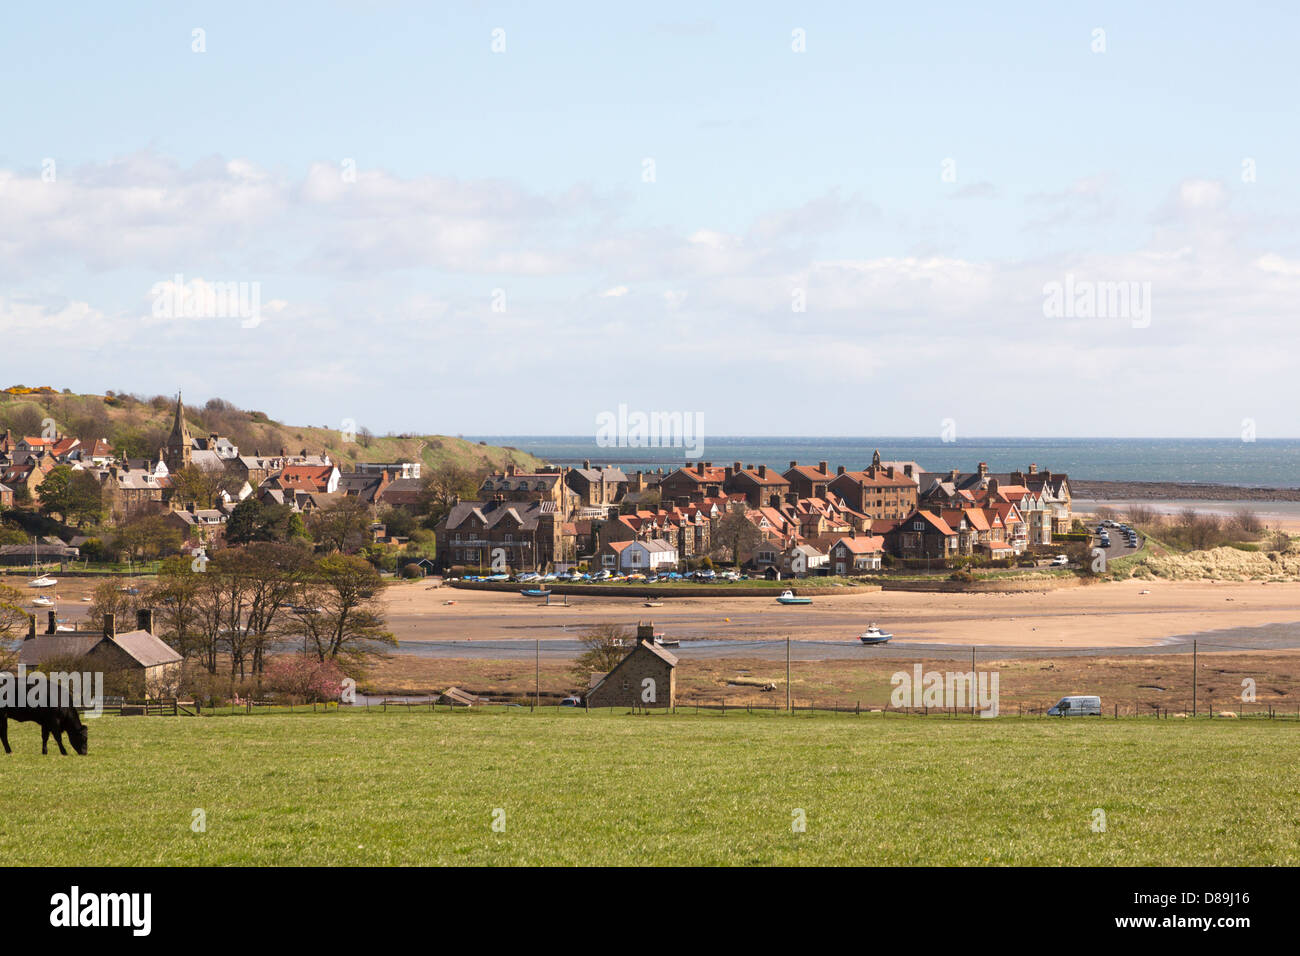 alnmouth-seafront-alnwick-northumberland